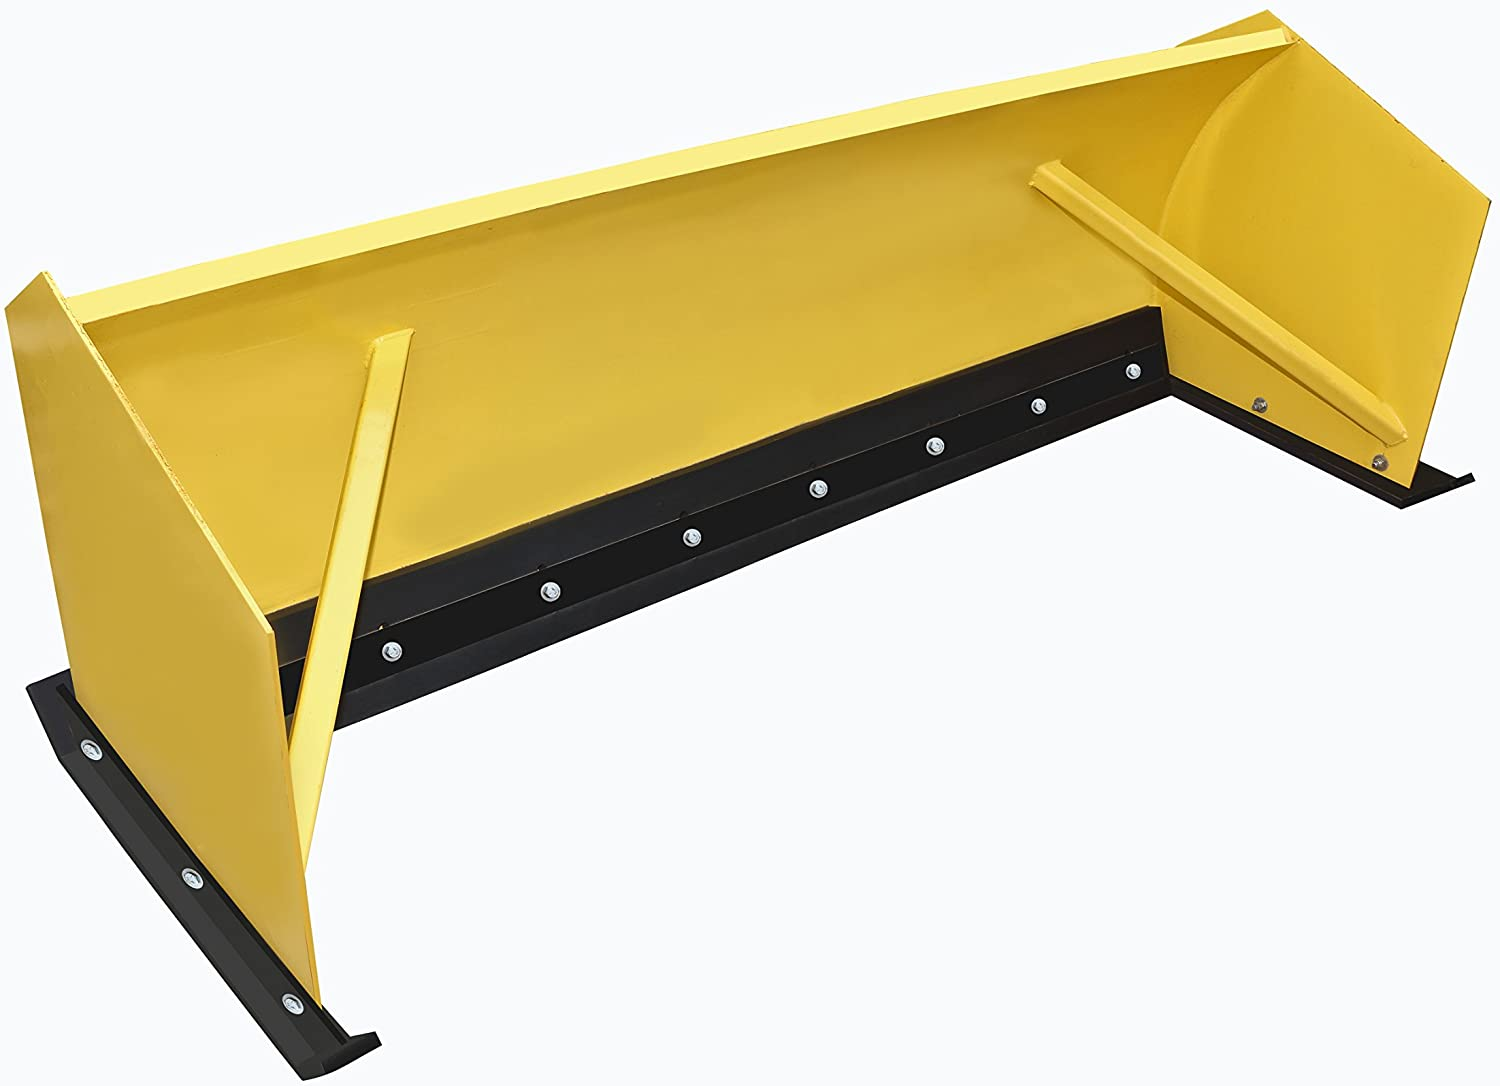 HEAVY DUTY SNOW PUSHER RUBBER 1-1   2 THICK X 10 WIDE X 14FT. LONG PUNCHED STANDARD HIGHWAY SLOTS. SNOW PLOW RUBBER